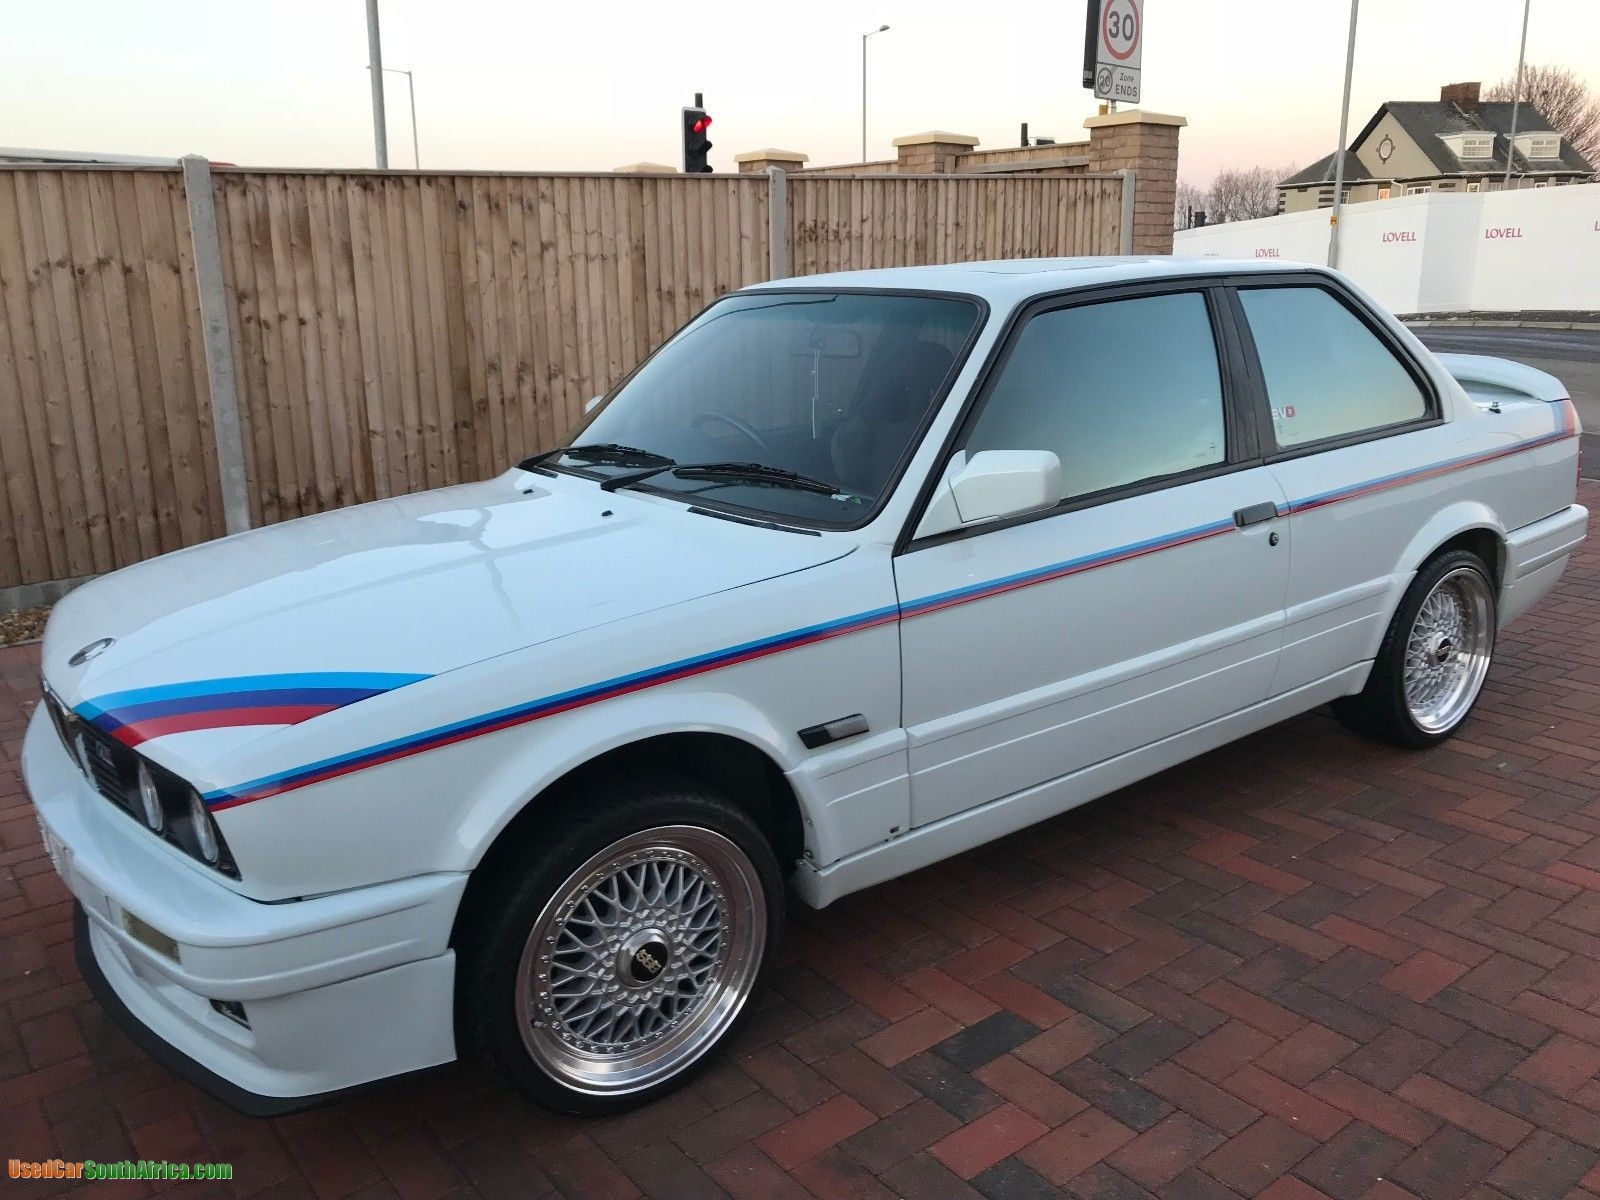 1989 bmw 325is sport used car for sale in bronkhorstspruit gauteng south africa usedcarsouthafrica 0